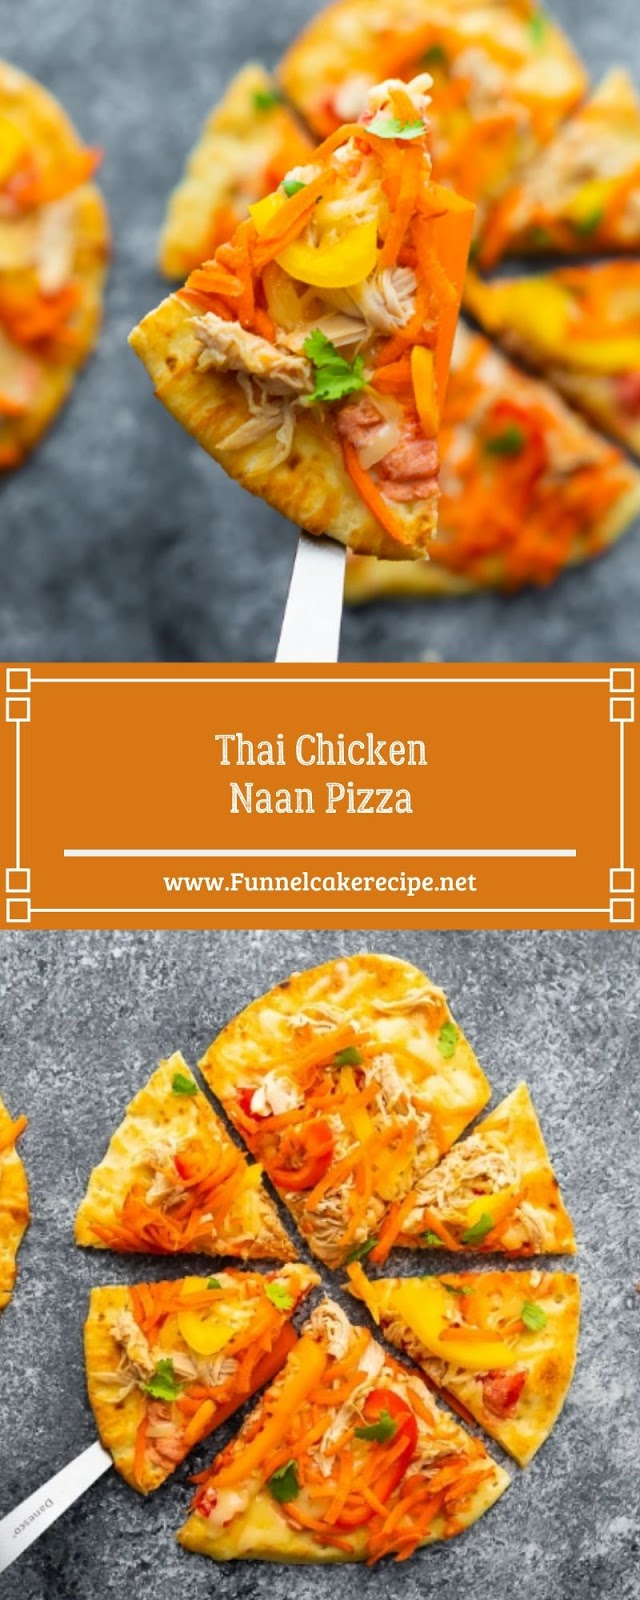 Thai Chicken Naan Pizza